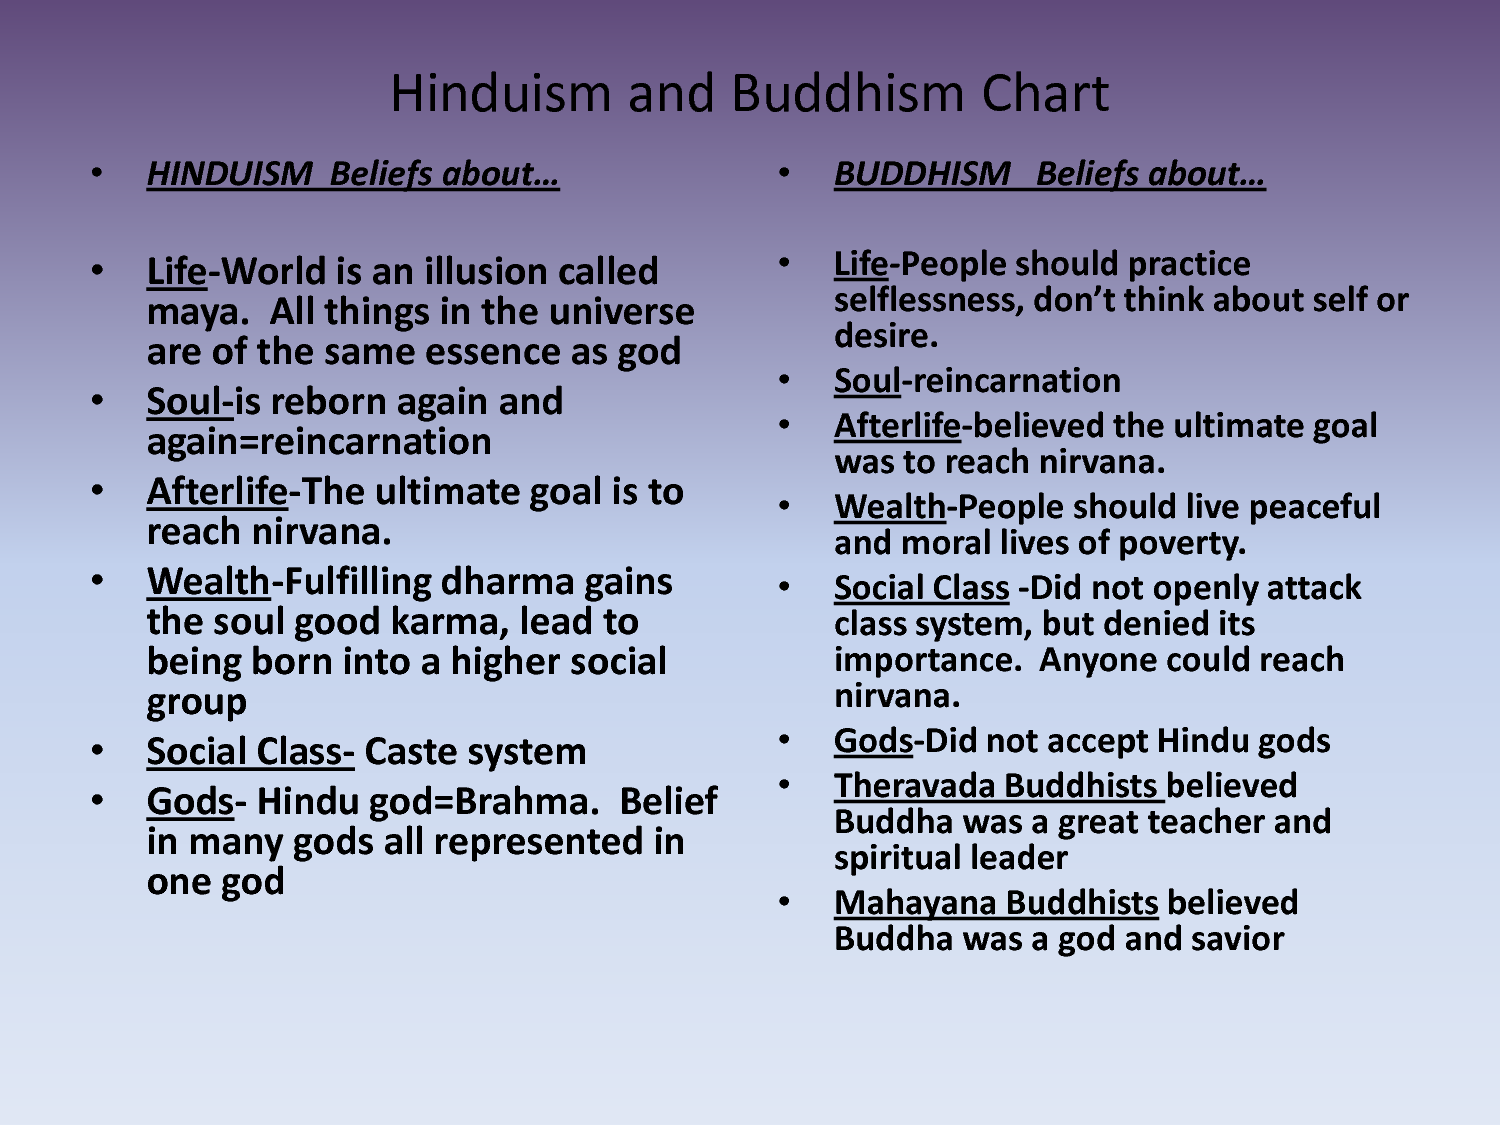 confucianism vs hinduism Hinduism is, some would say, the world's most ancient and sprawling religion its scriptures and teachings are voluminous and wide-ranging, addressing everything from science and history to.